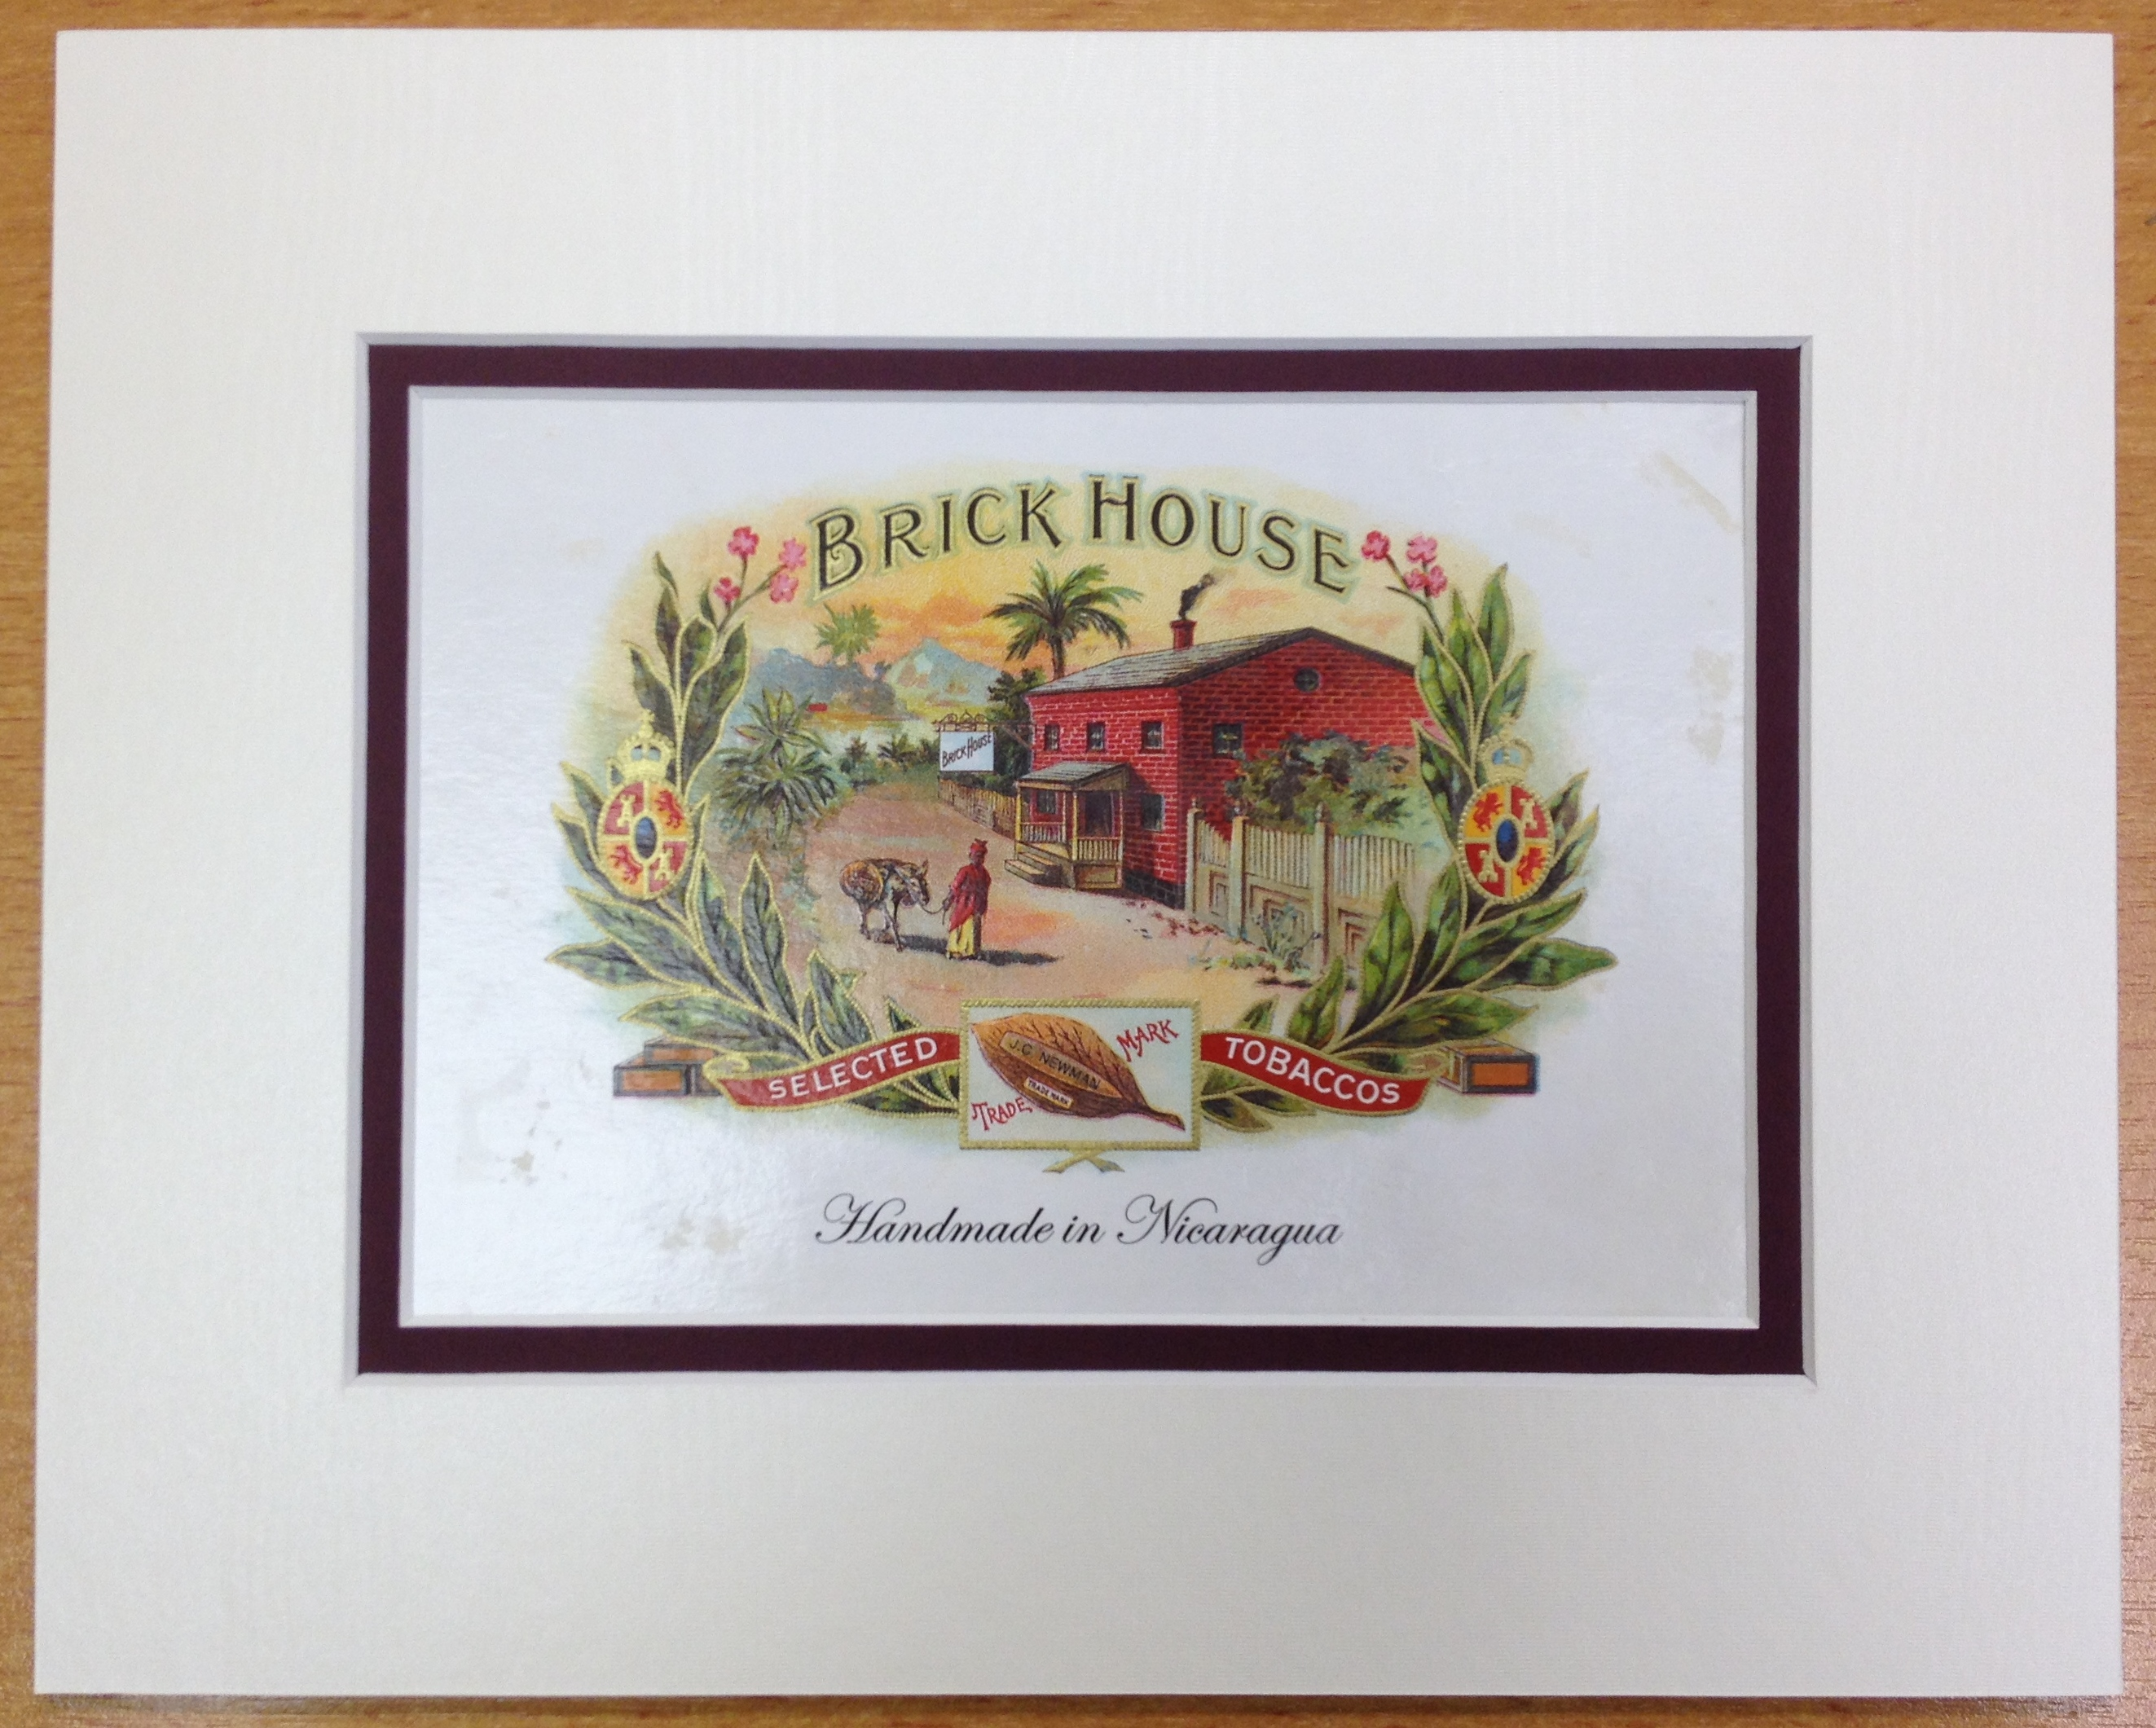 Brick House Maduro Cigar Box Label, Matted, 8 x 10